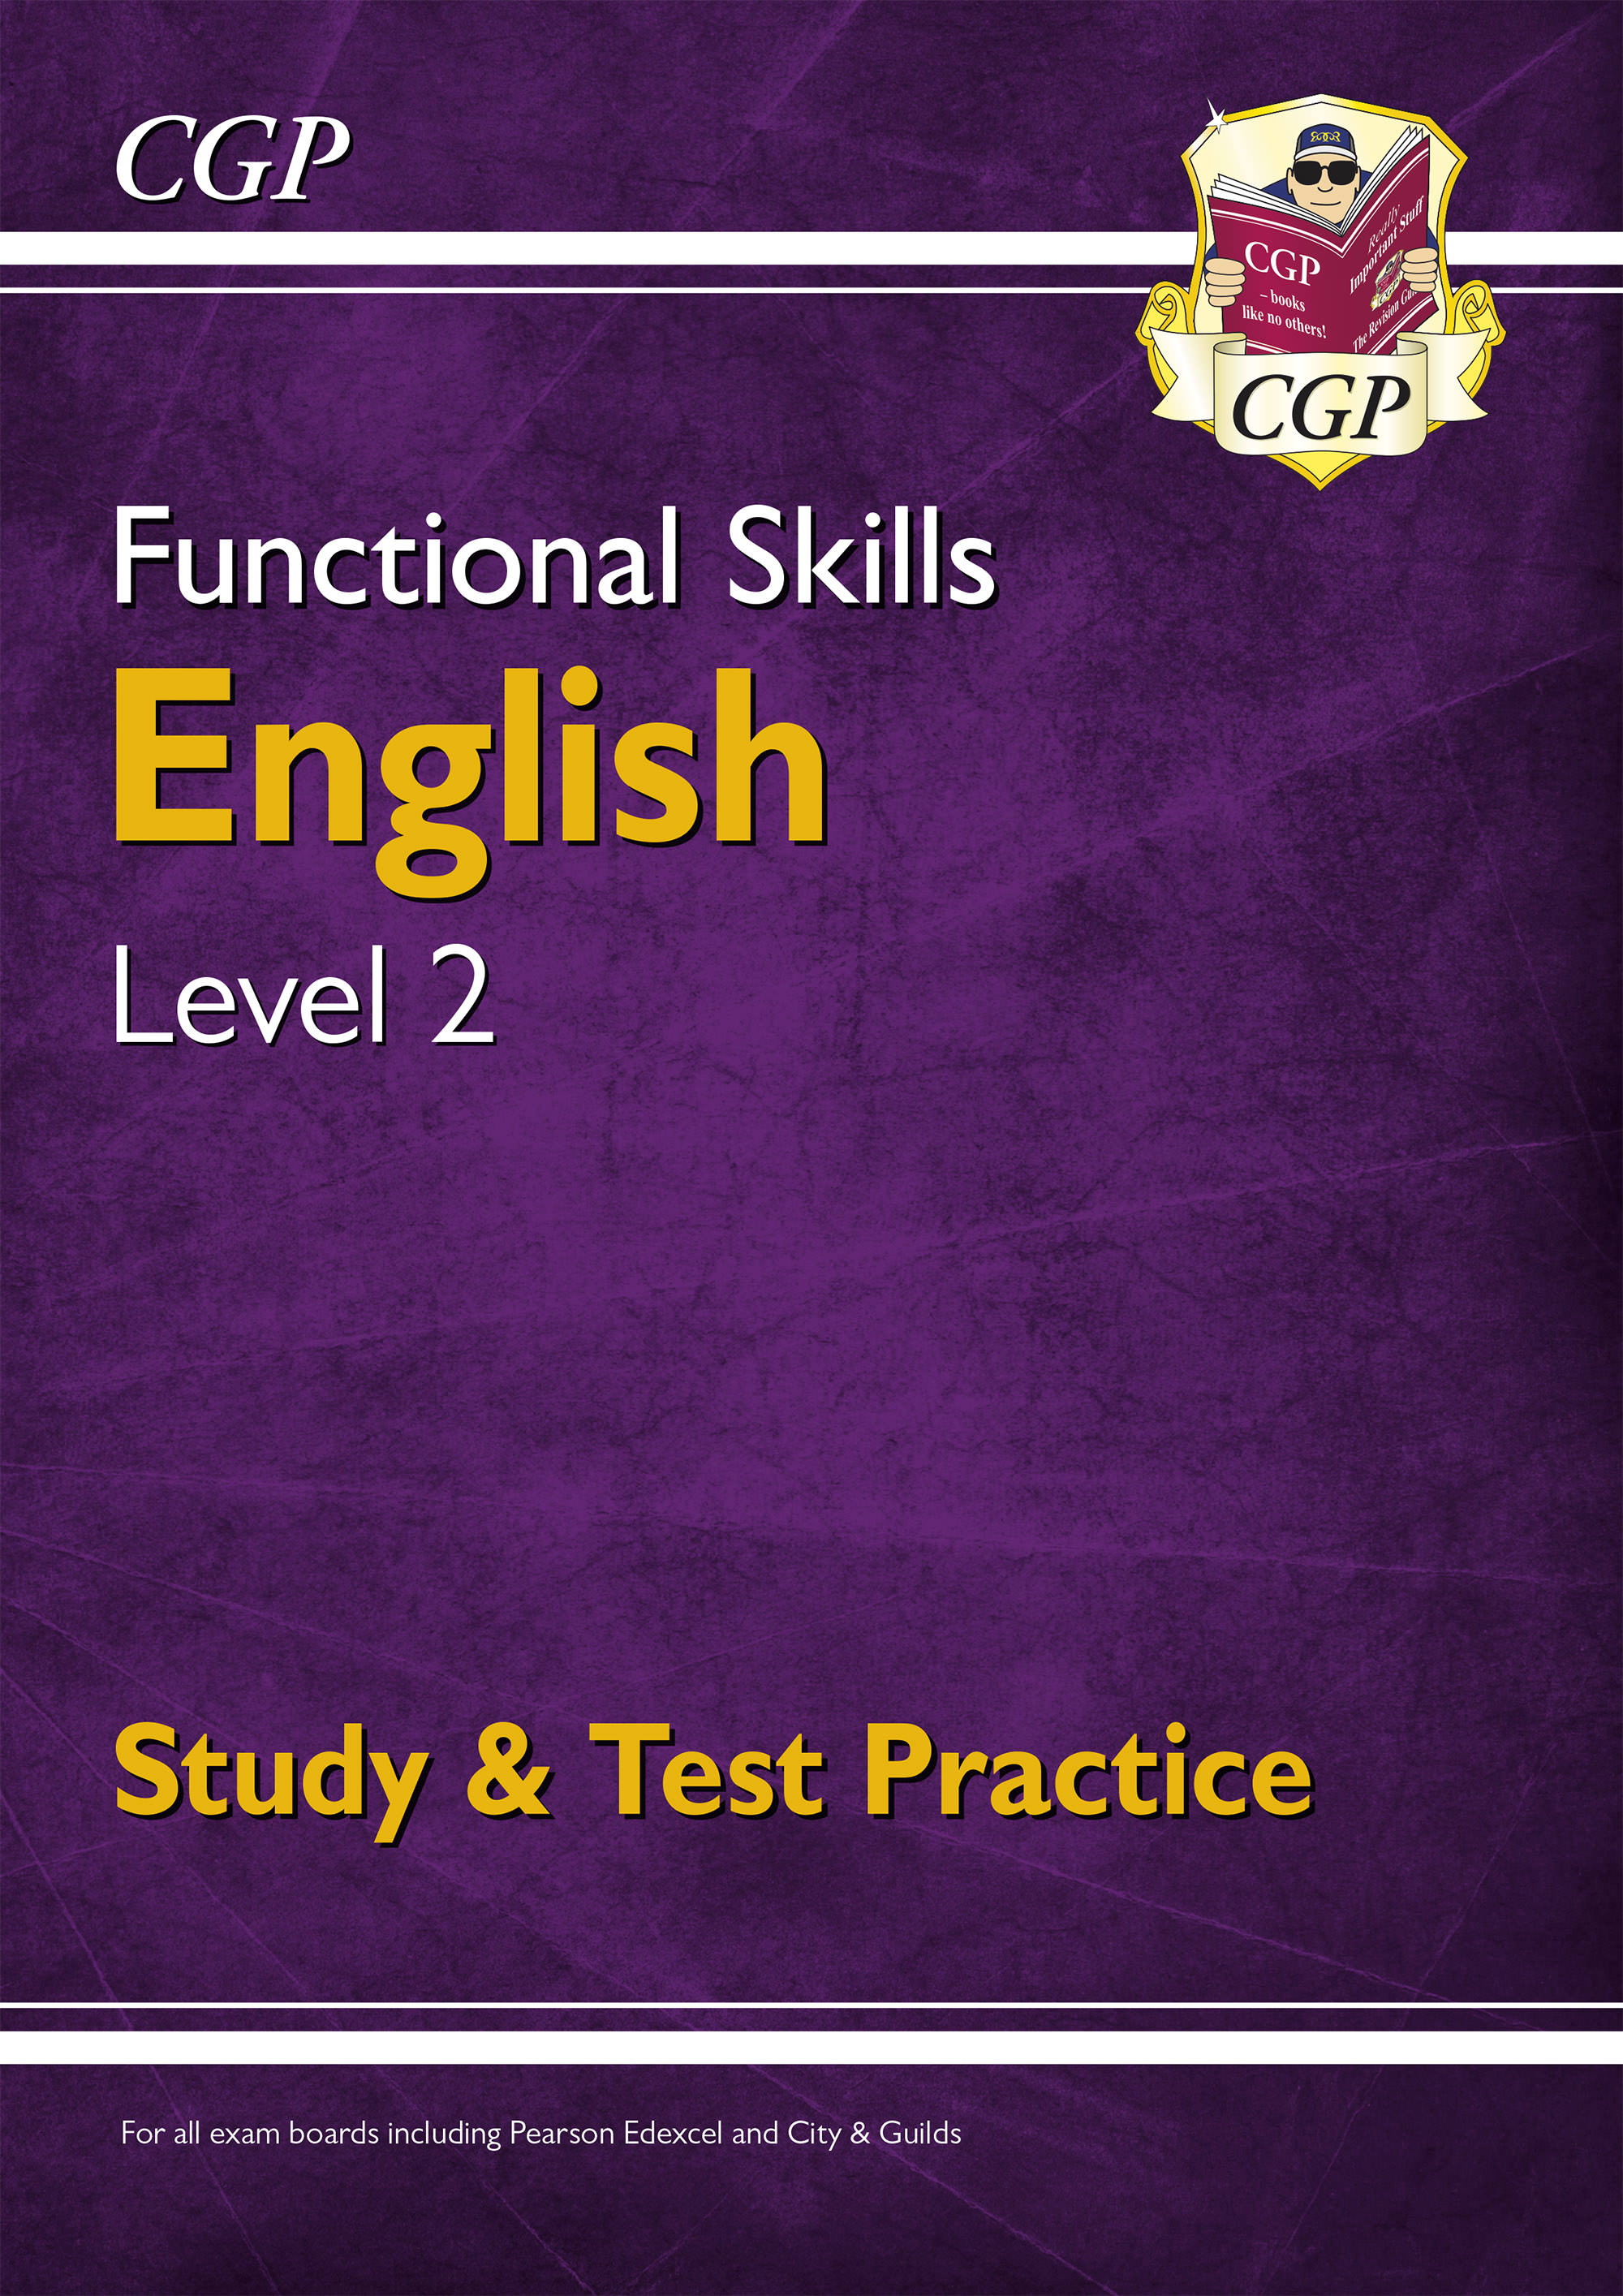 E2SRA3DK - Functional Skills English Level 2 - Study & Test Practice (for 2021 & beyond)